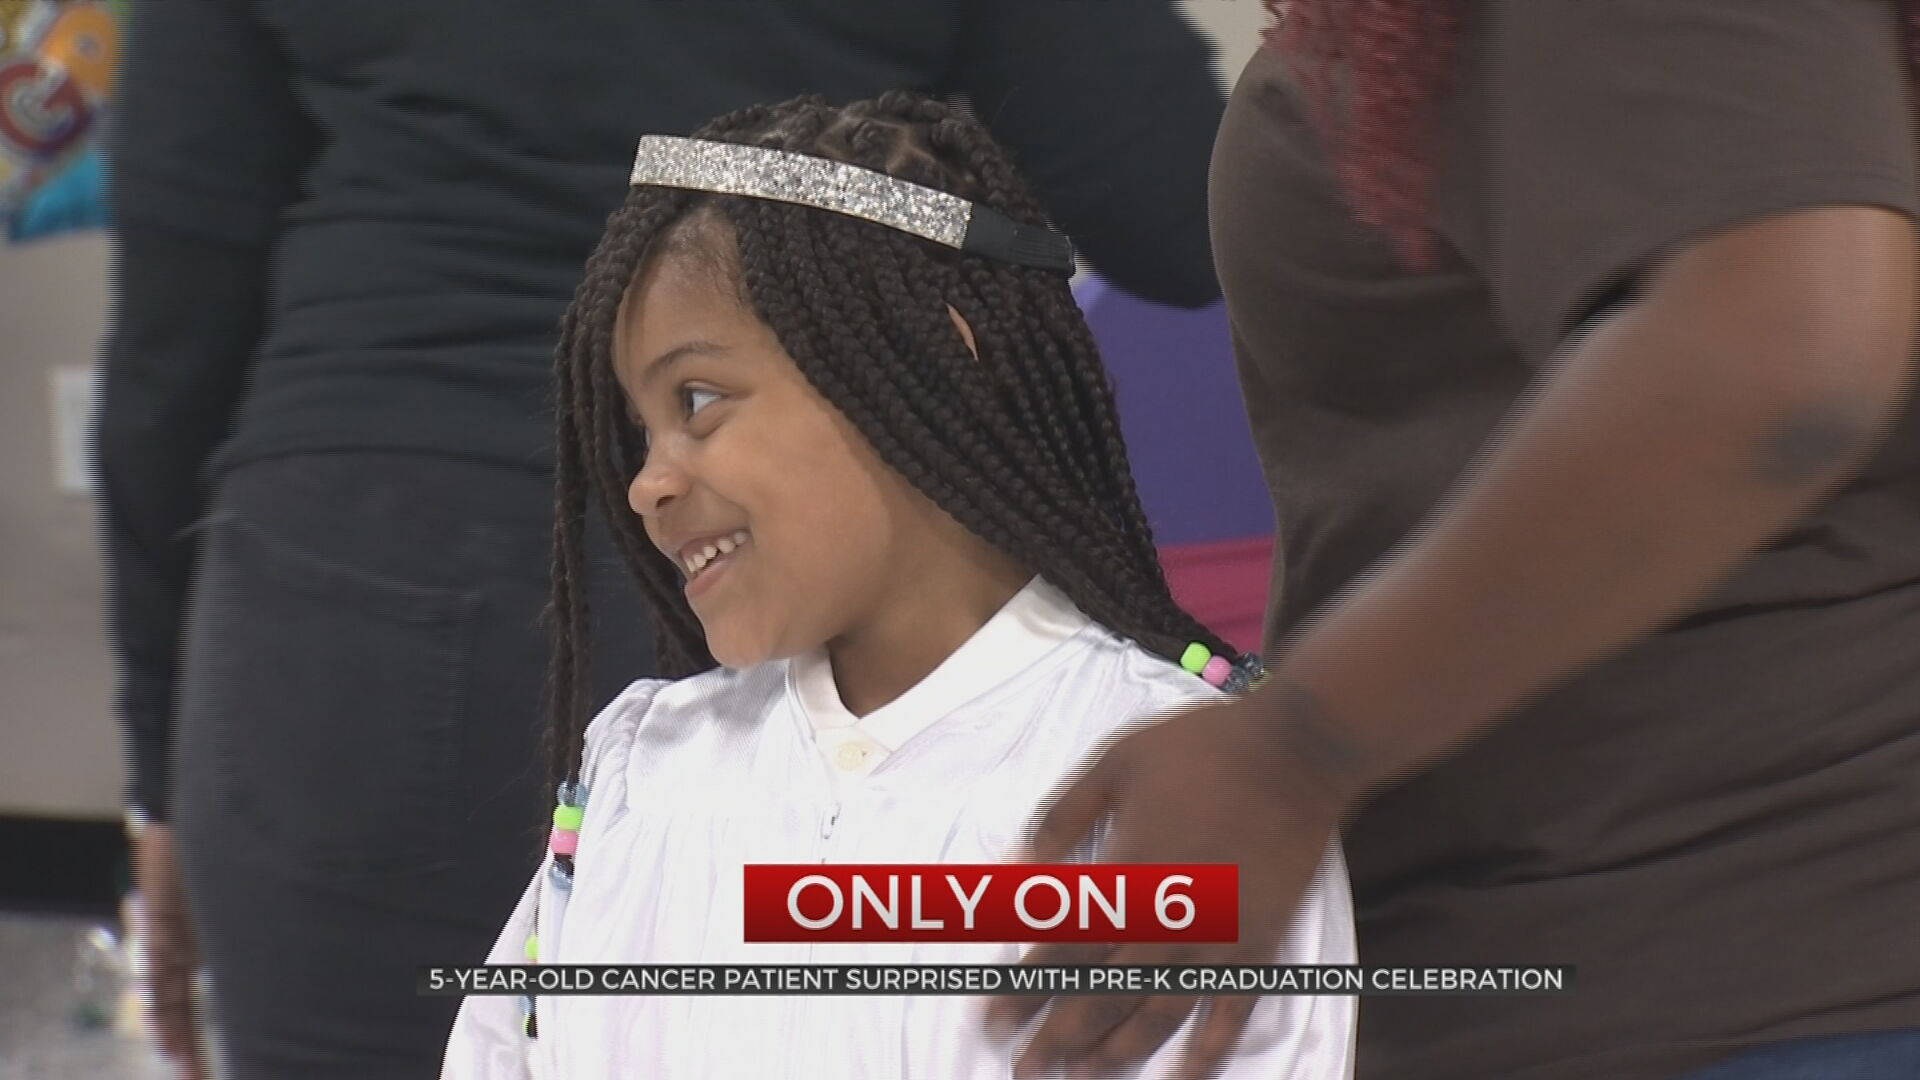 Tulsa 5-Year-Old Cancer Patient Surprised With Pre-K Graduation Celebration